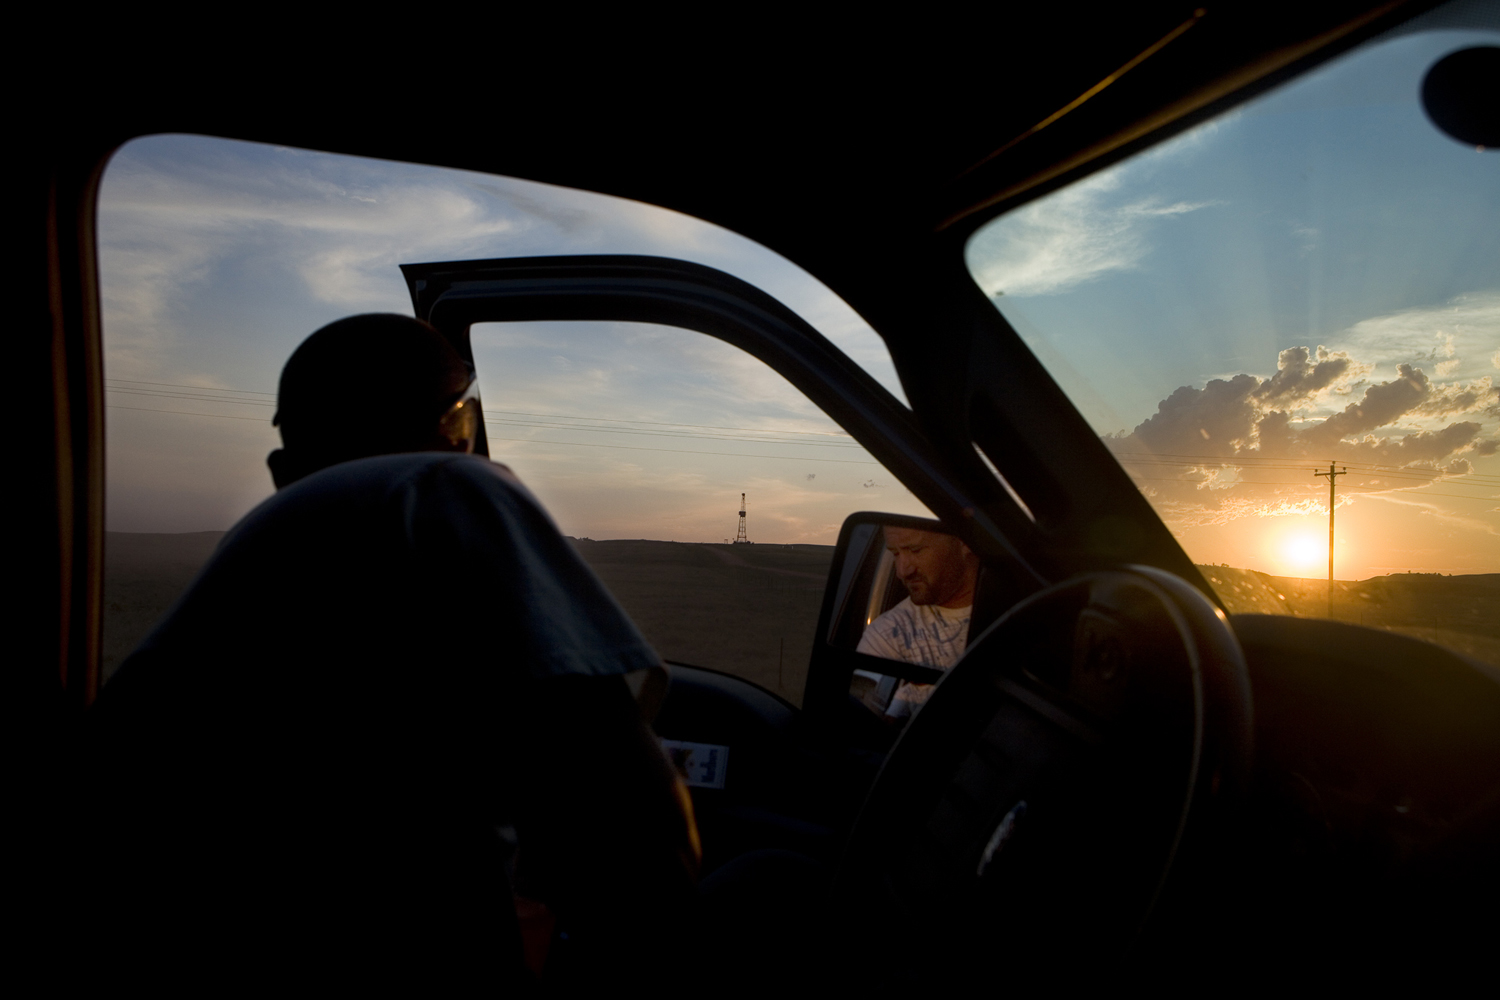 When creating Black Rush Life I saw how film making could be overwhelming for one person.  Once I had a team  to help shoot, produce, and edit, I could focus on directing and not worry about everything else.  Working with Reel Peak Films gave me the ability to direct a much better film. It is exciting to be part of a team that works collaboratively with many projects.  Print media has a growing need for quality film content for the web, but until this point I have not seen a production company that connects talent to clients and helps facilitate the process from beginning to end.   -Christina ClusiauPictured: Film still from  Black Rush Life,  2013. Brady Larkin, co-owner of Liquid Connection exits his truck on the way to a job site in Belfield, North Dakota, July 11, 2012. Larkin, after struggling to make a living wage in Grand Forks, North Dakota moved to Belfield and started his own trucking company. For many, this oil boom breathes opportunity and represents another shot at the American Dream.